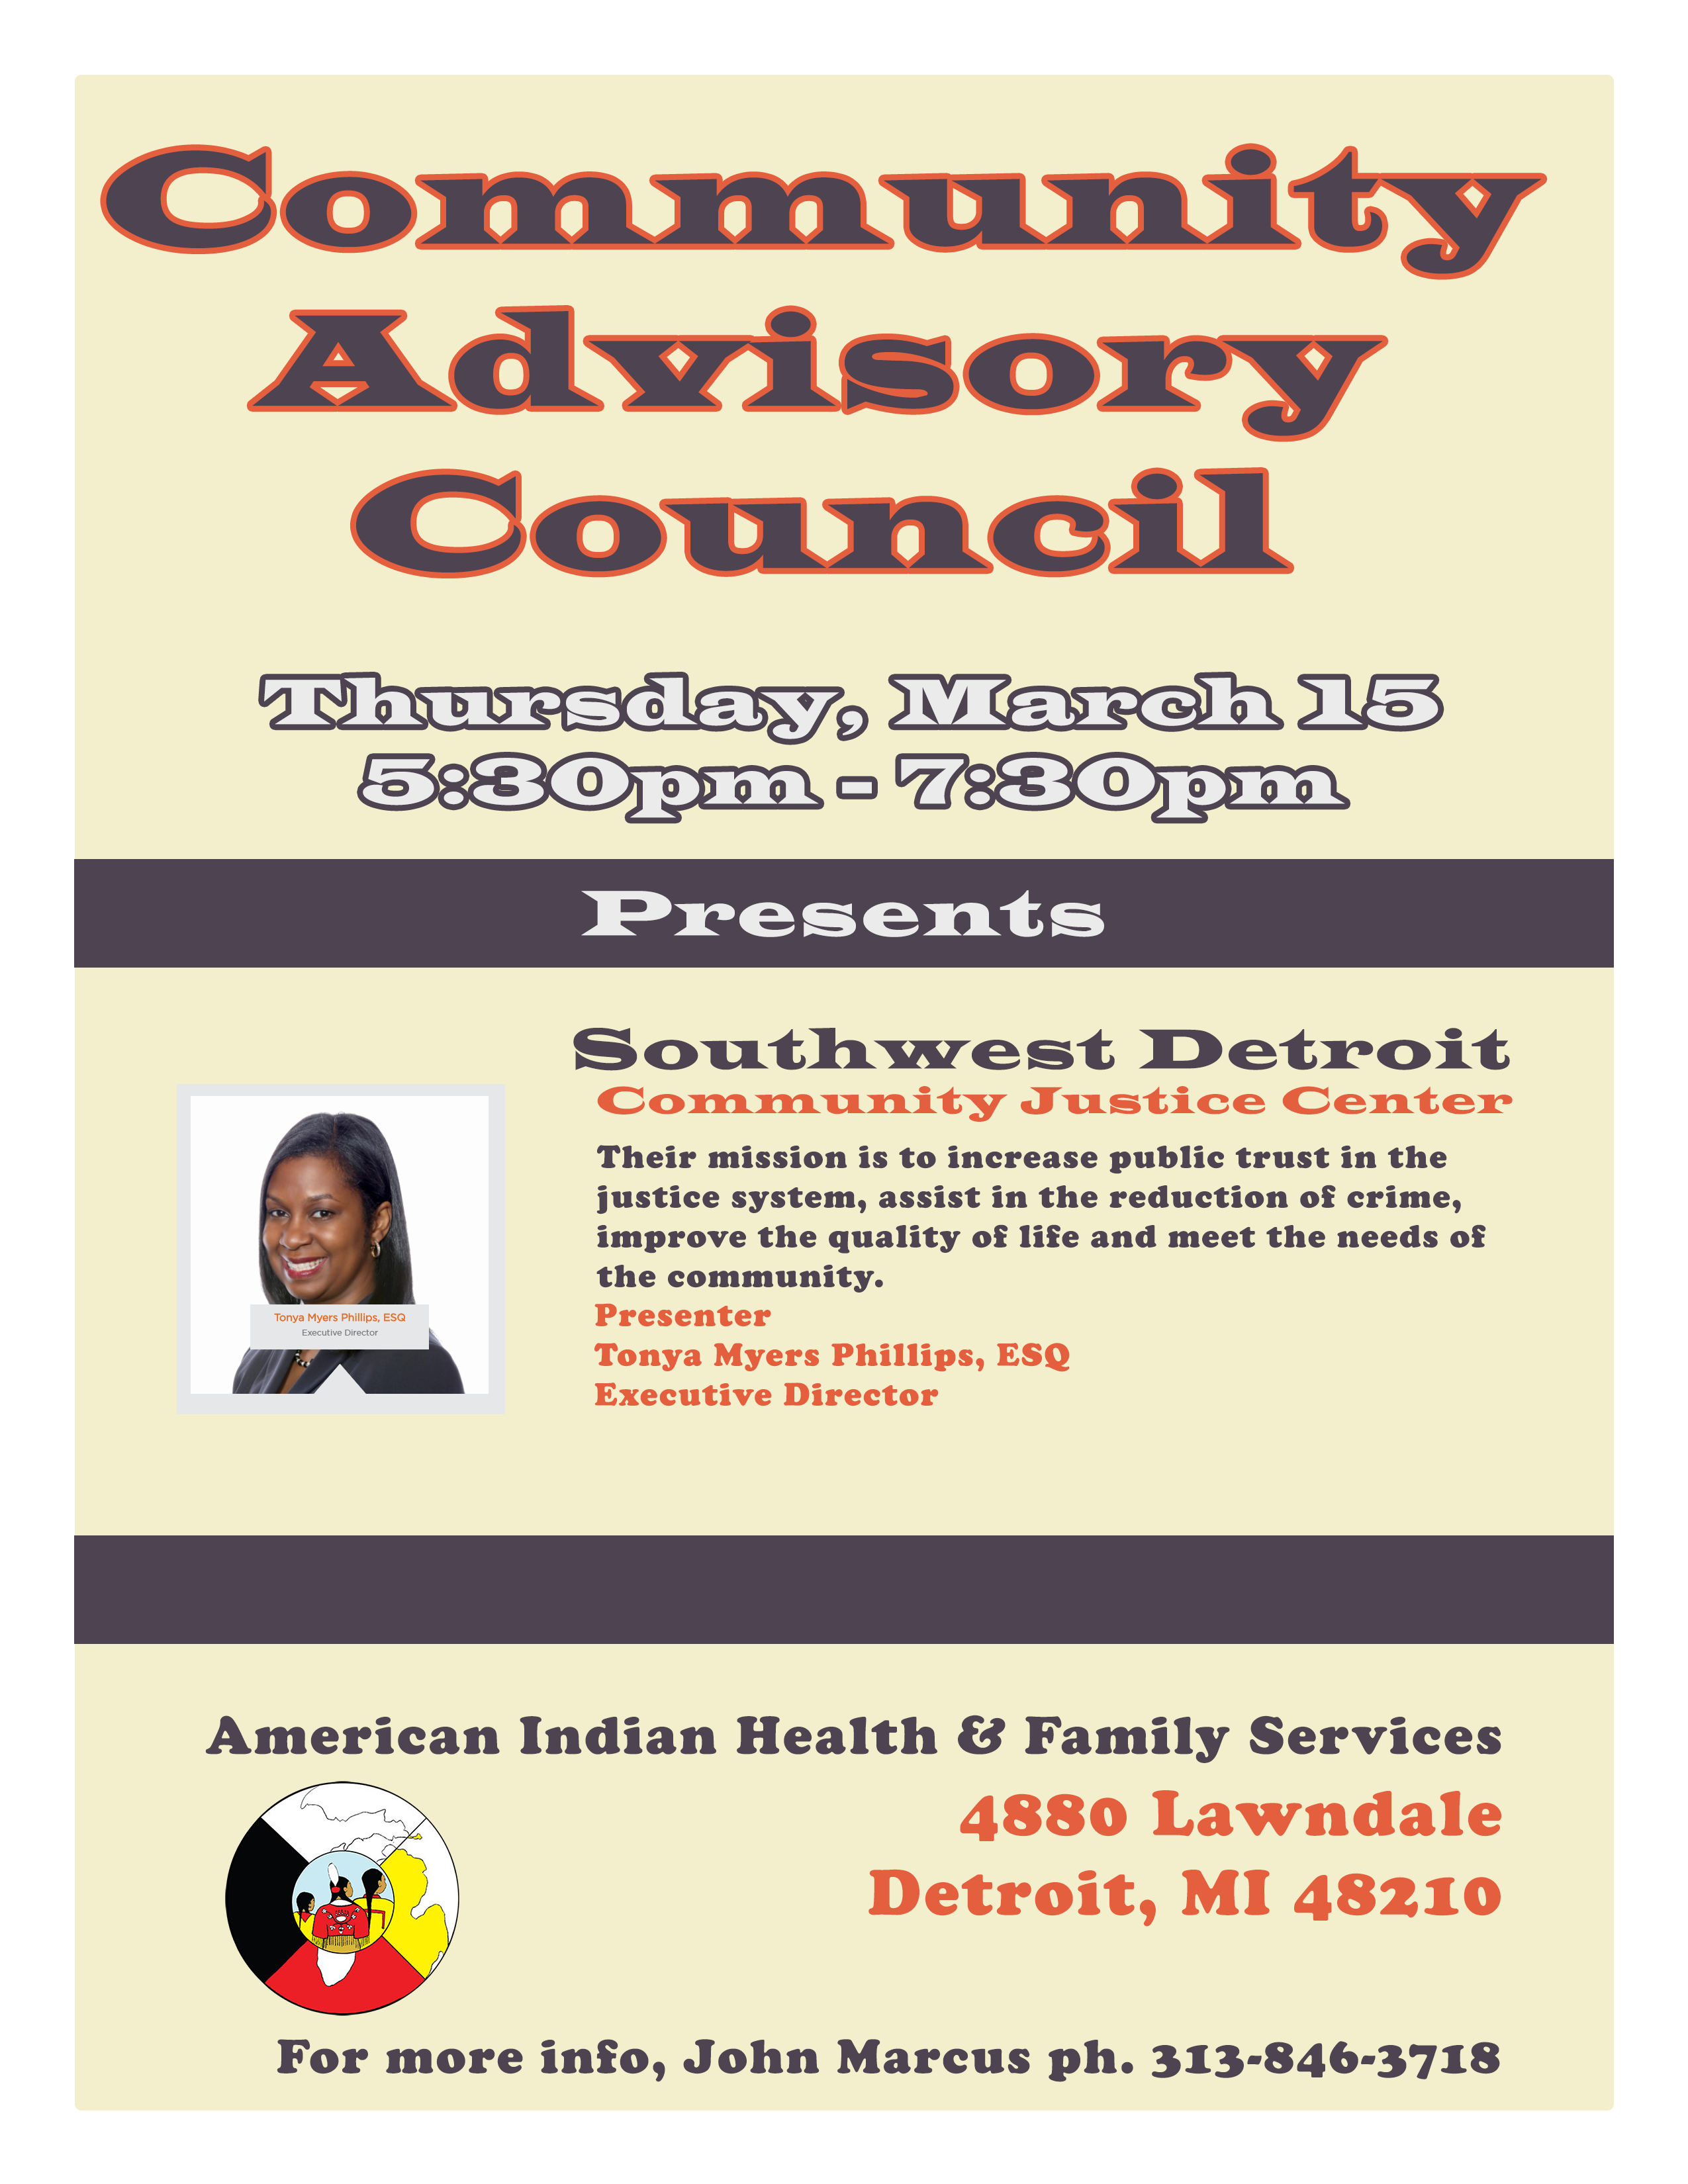 Aihfs community announcements thursday march 15th 530pm 730pm at aihfs we will have tonya myers phillips executive director of the southwest detroit community justice center aiddatafo Image collections